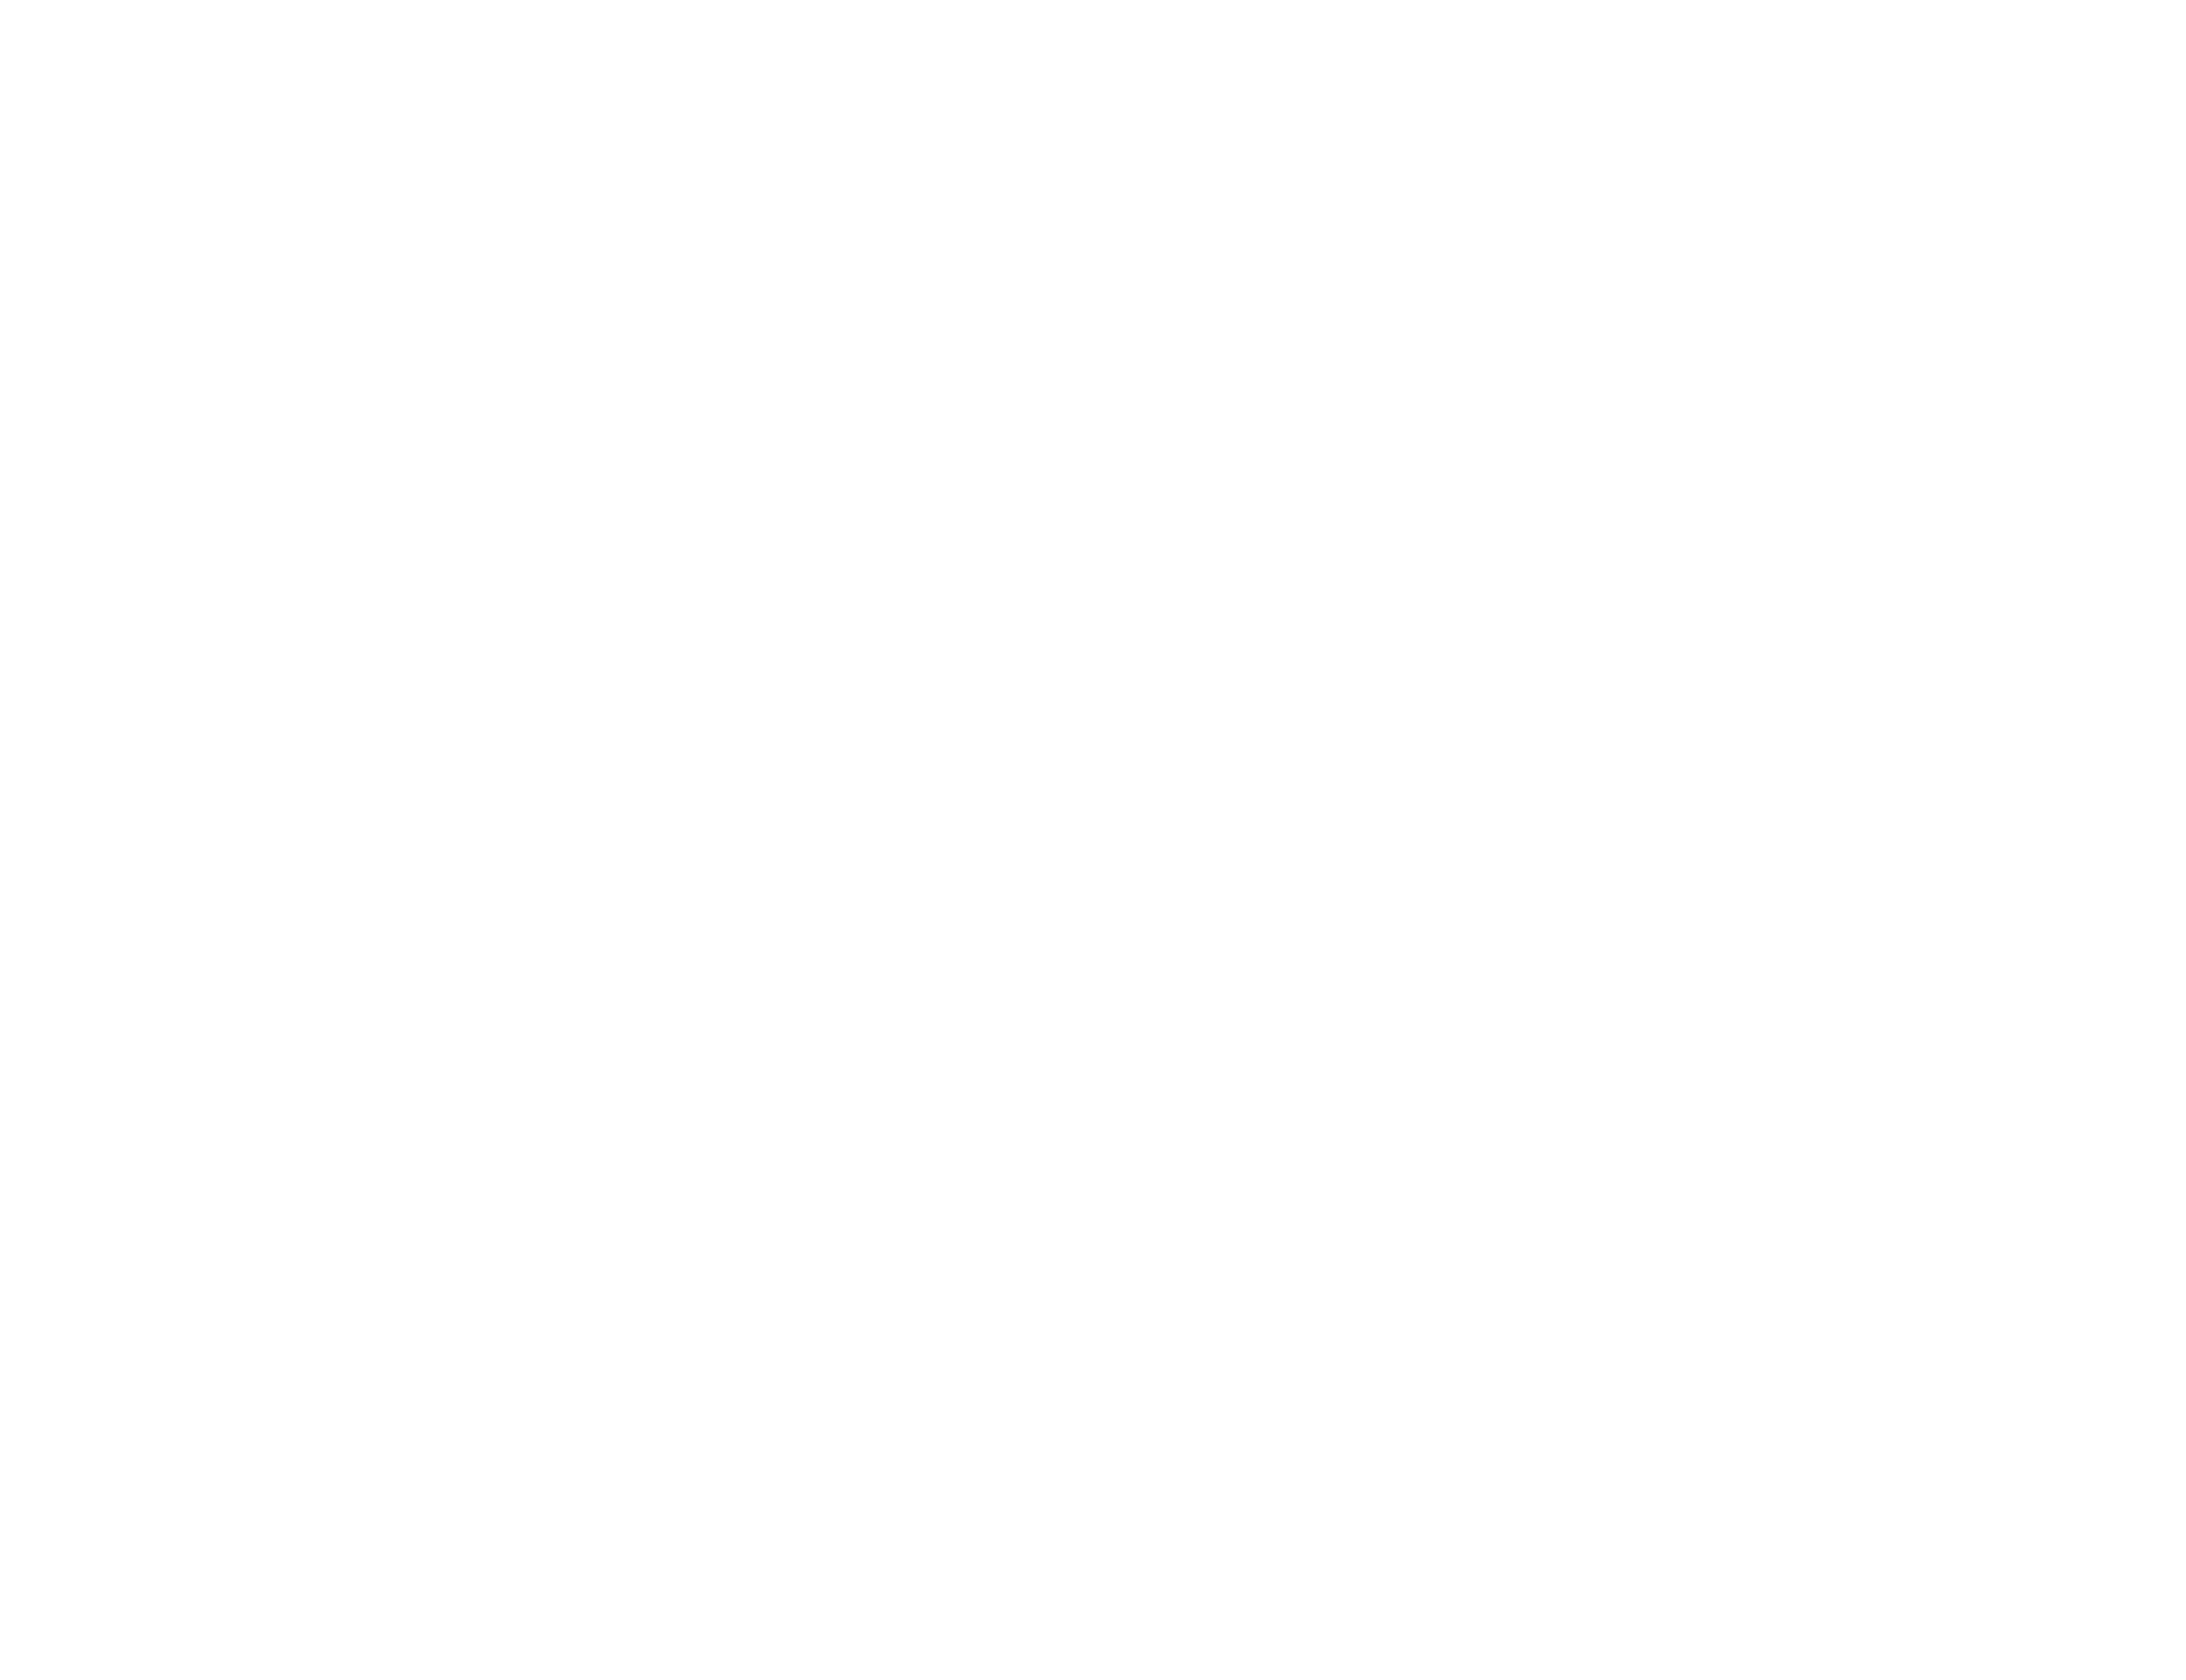 National Runaway Safeline | Here to Listen. Here to Help